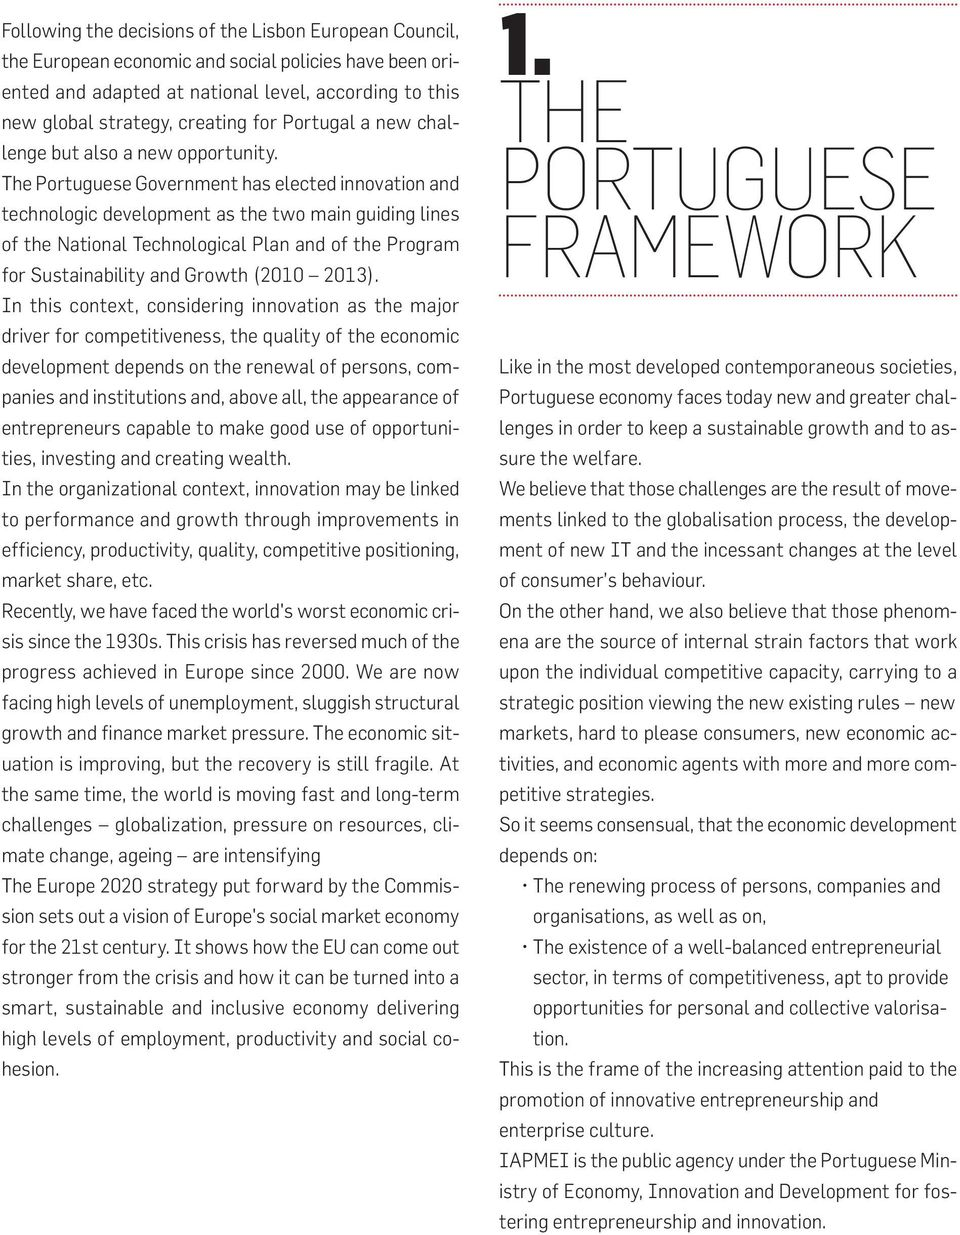 The Portuguese Government has elected innovation and technologic development as the two main guiding lines of the National Technological Plan and of the Program for Sustainability and Growth (2010